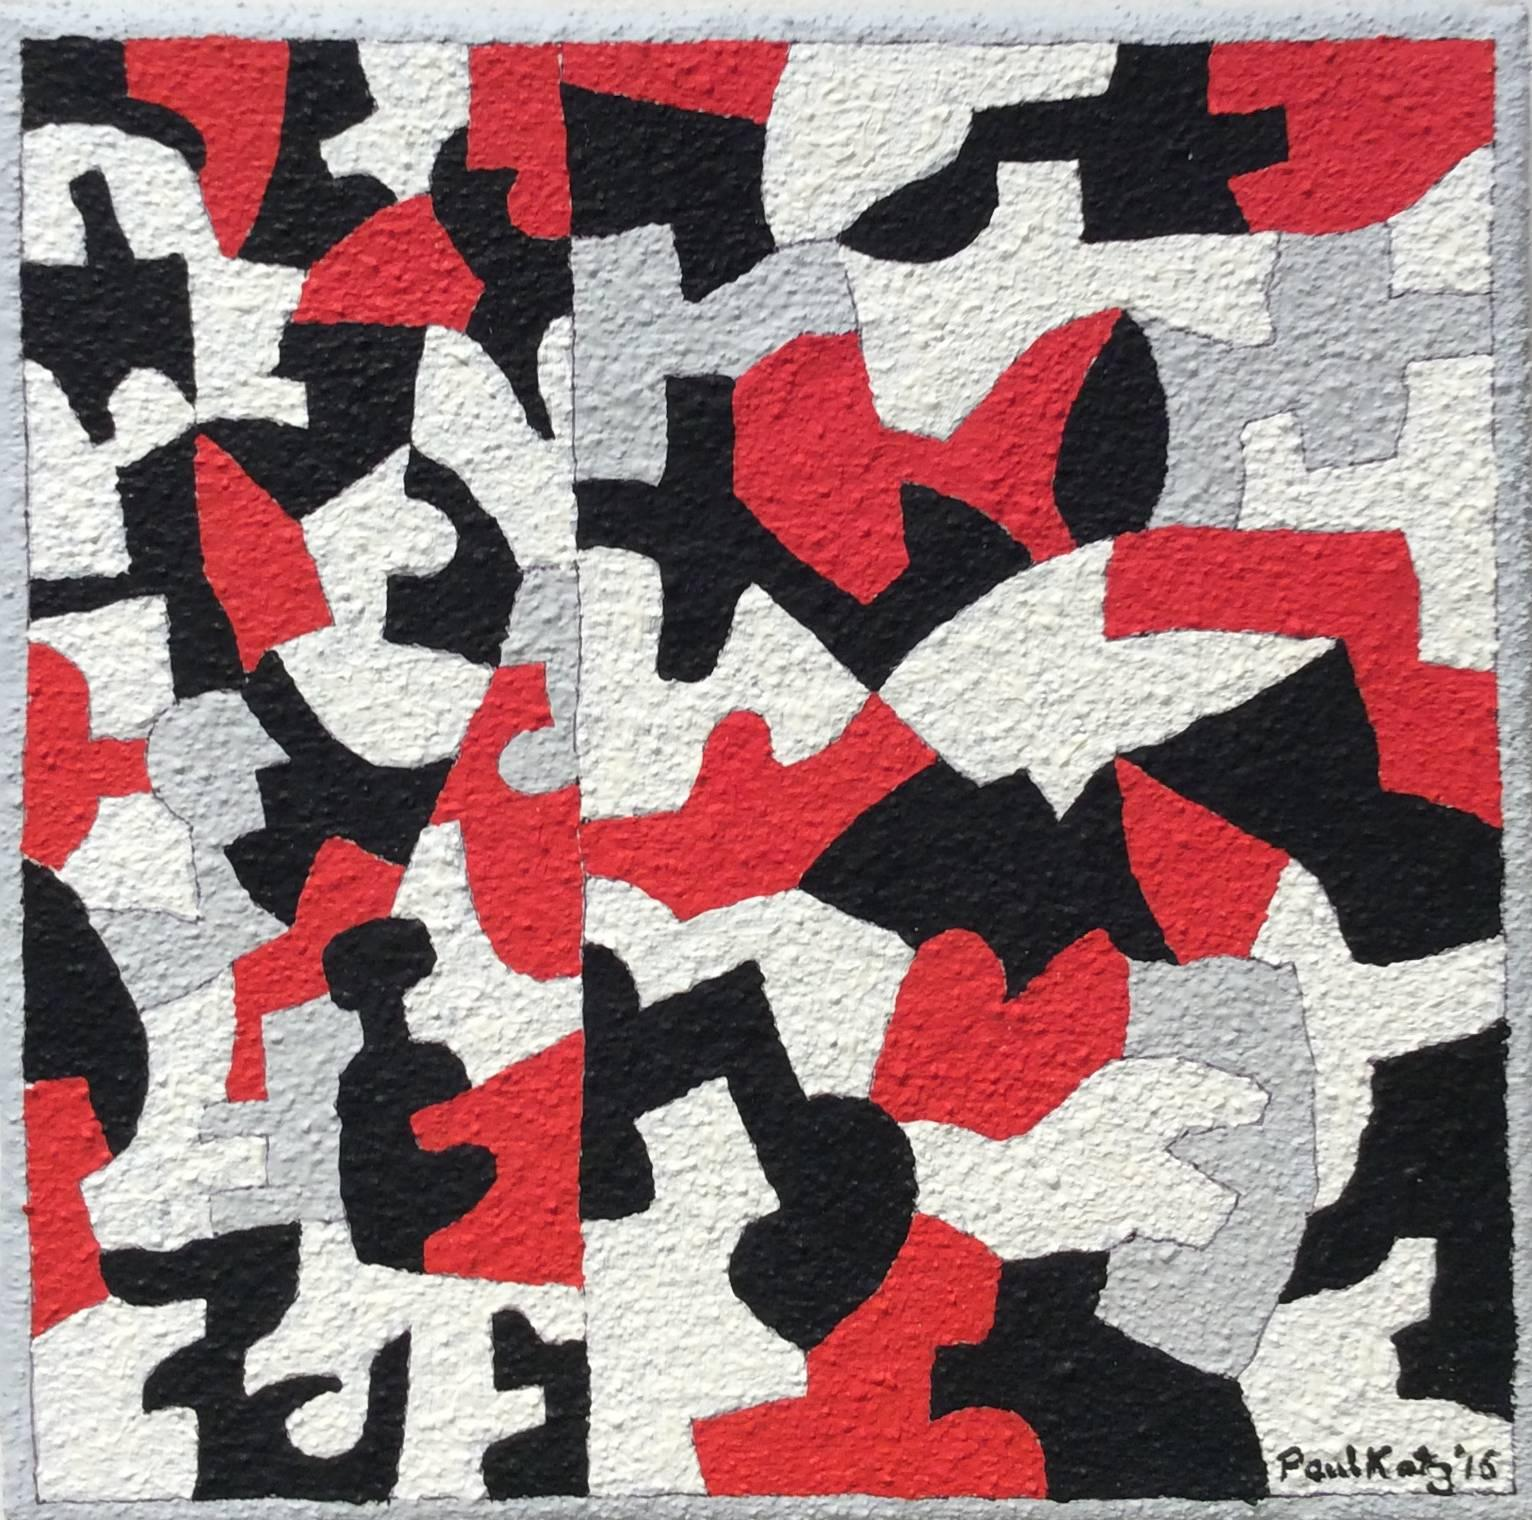 Interlock #43 (Graphic, Abstract Red, Grey, White & Black Painting on Canvas)